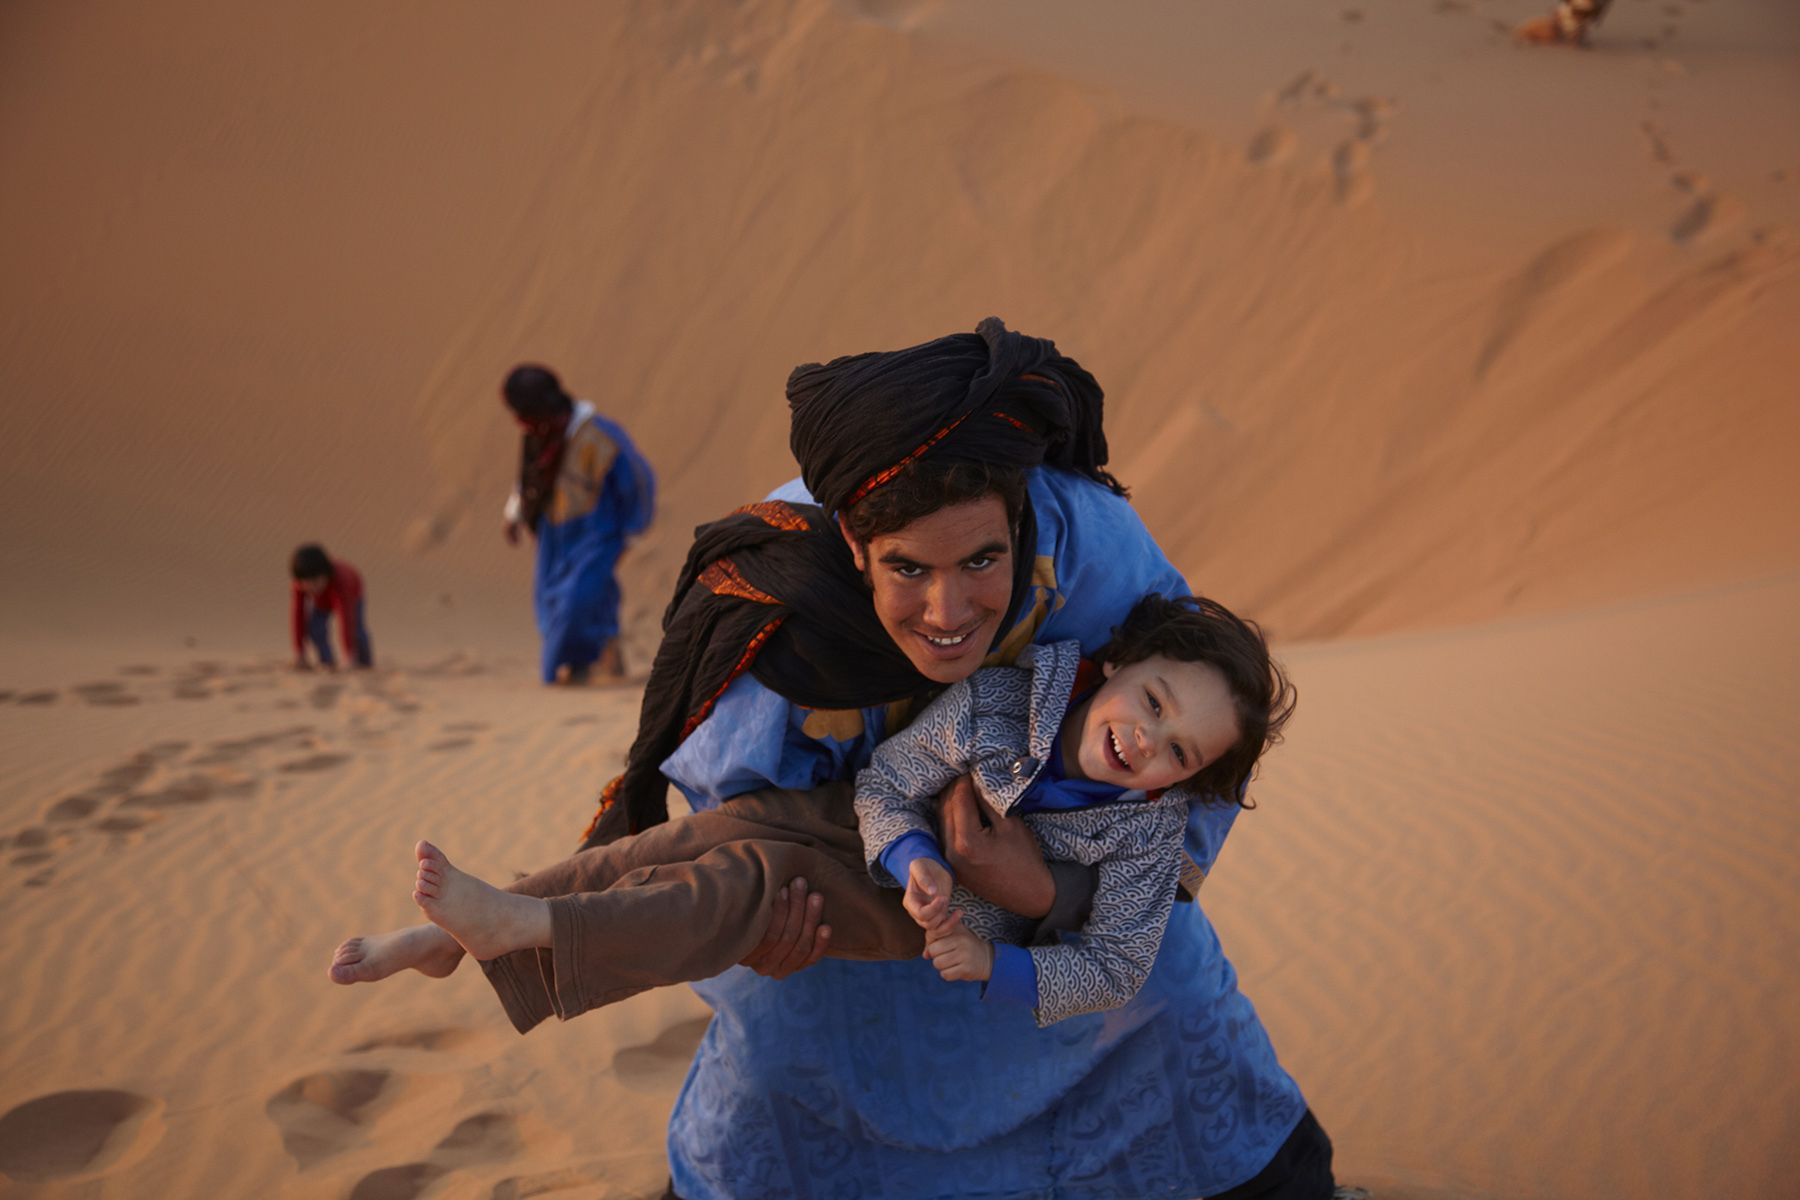 Playing in the dunes of Erg Chebbi, Morocco